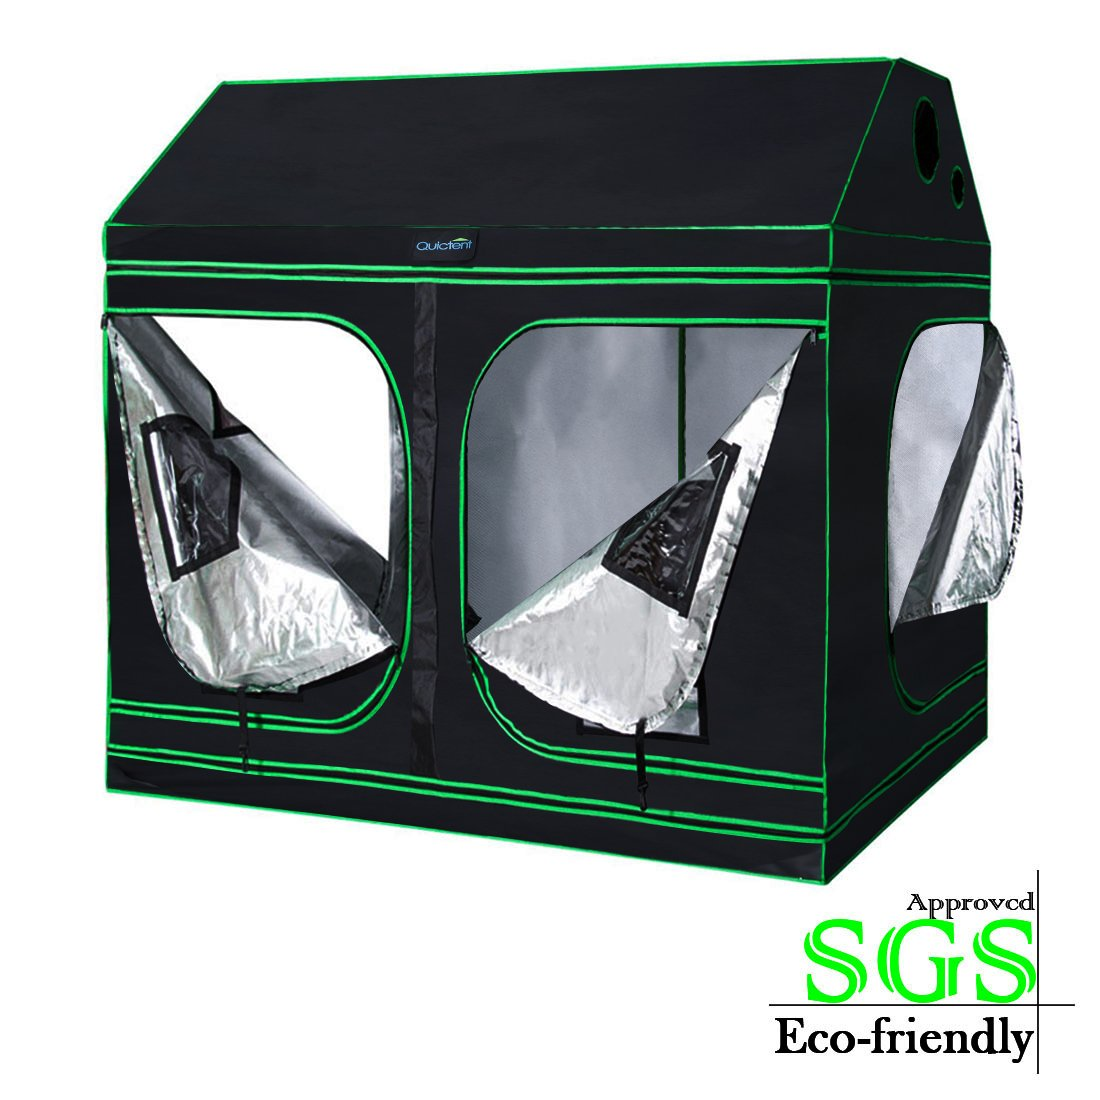 Quictent SGS Approved Eco-Friendly 96''x48''x71'' Reflective Mylar Hydroponic Roof Cube Grow Tent with Obeservation Window and Waterproof Floor Tray for Indoor Plant Growing